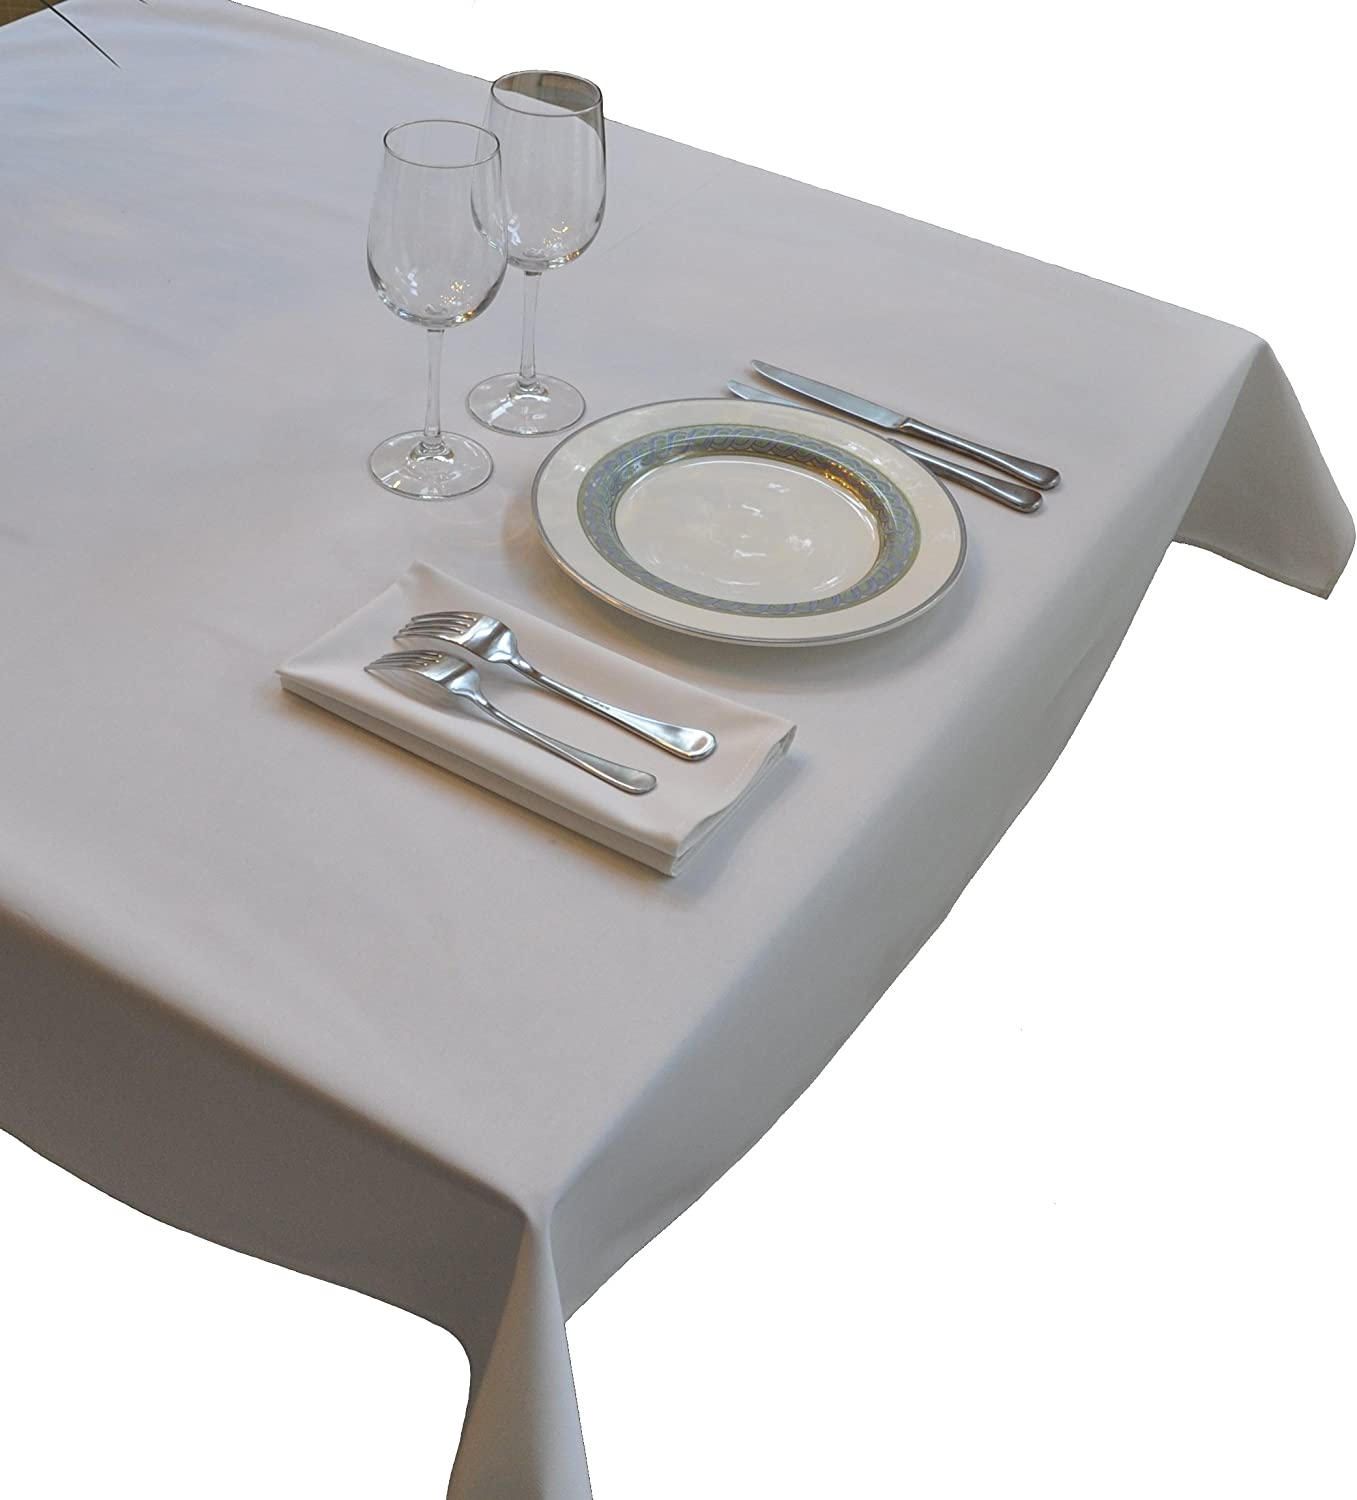 Nouvelle Legende Tablecloth - Commercial Grade 52 in. by 114 in. White